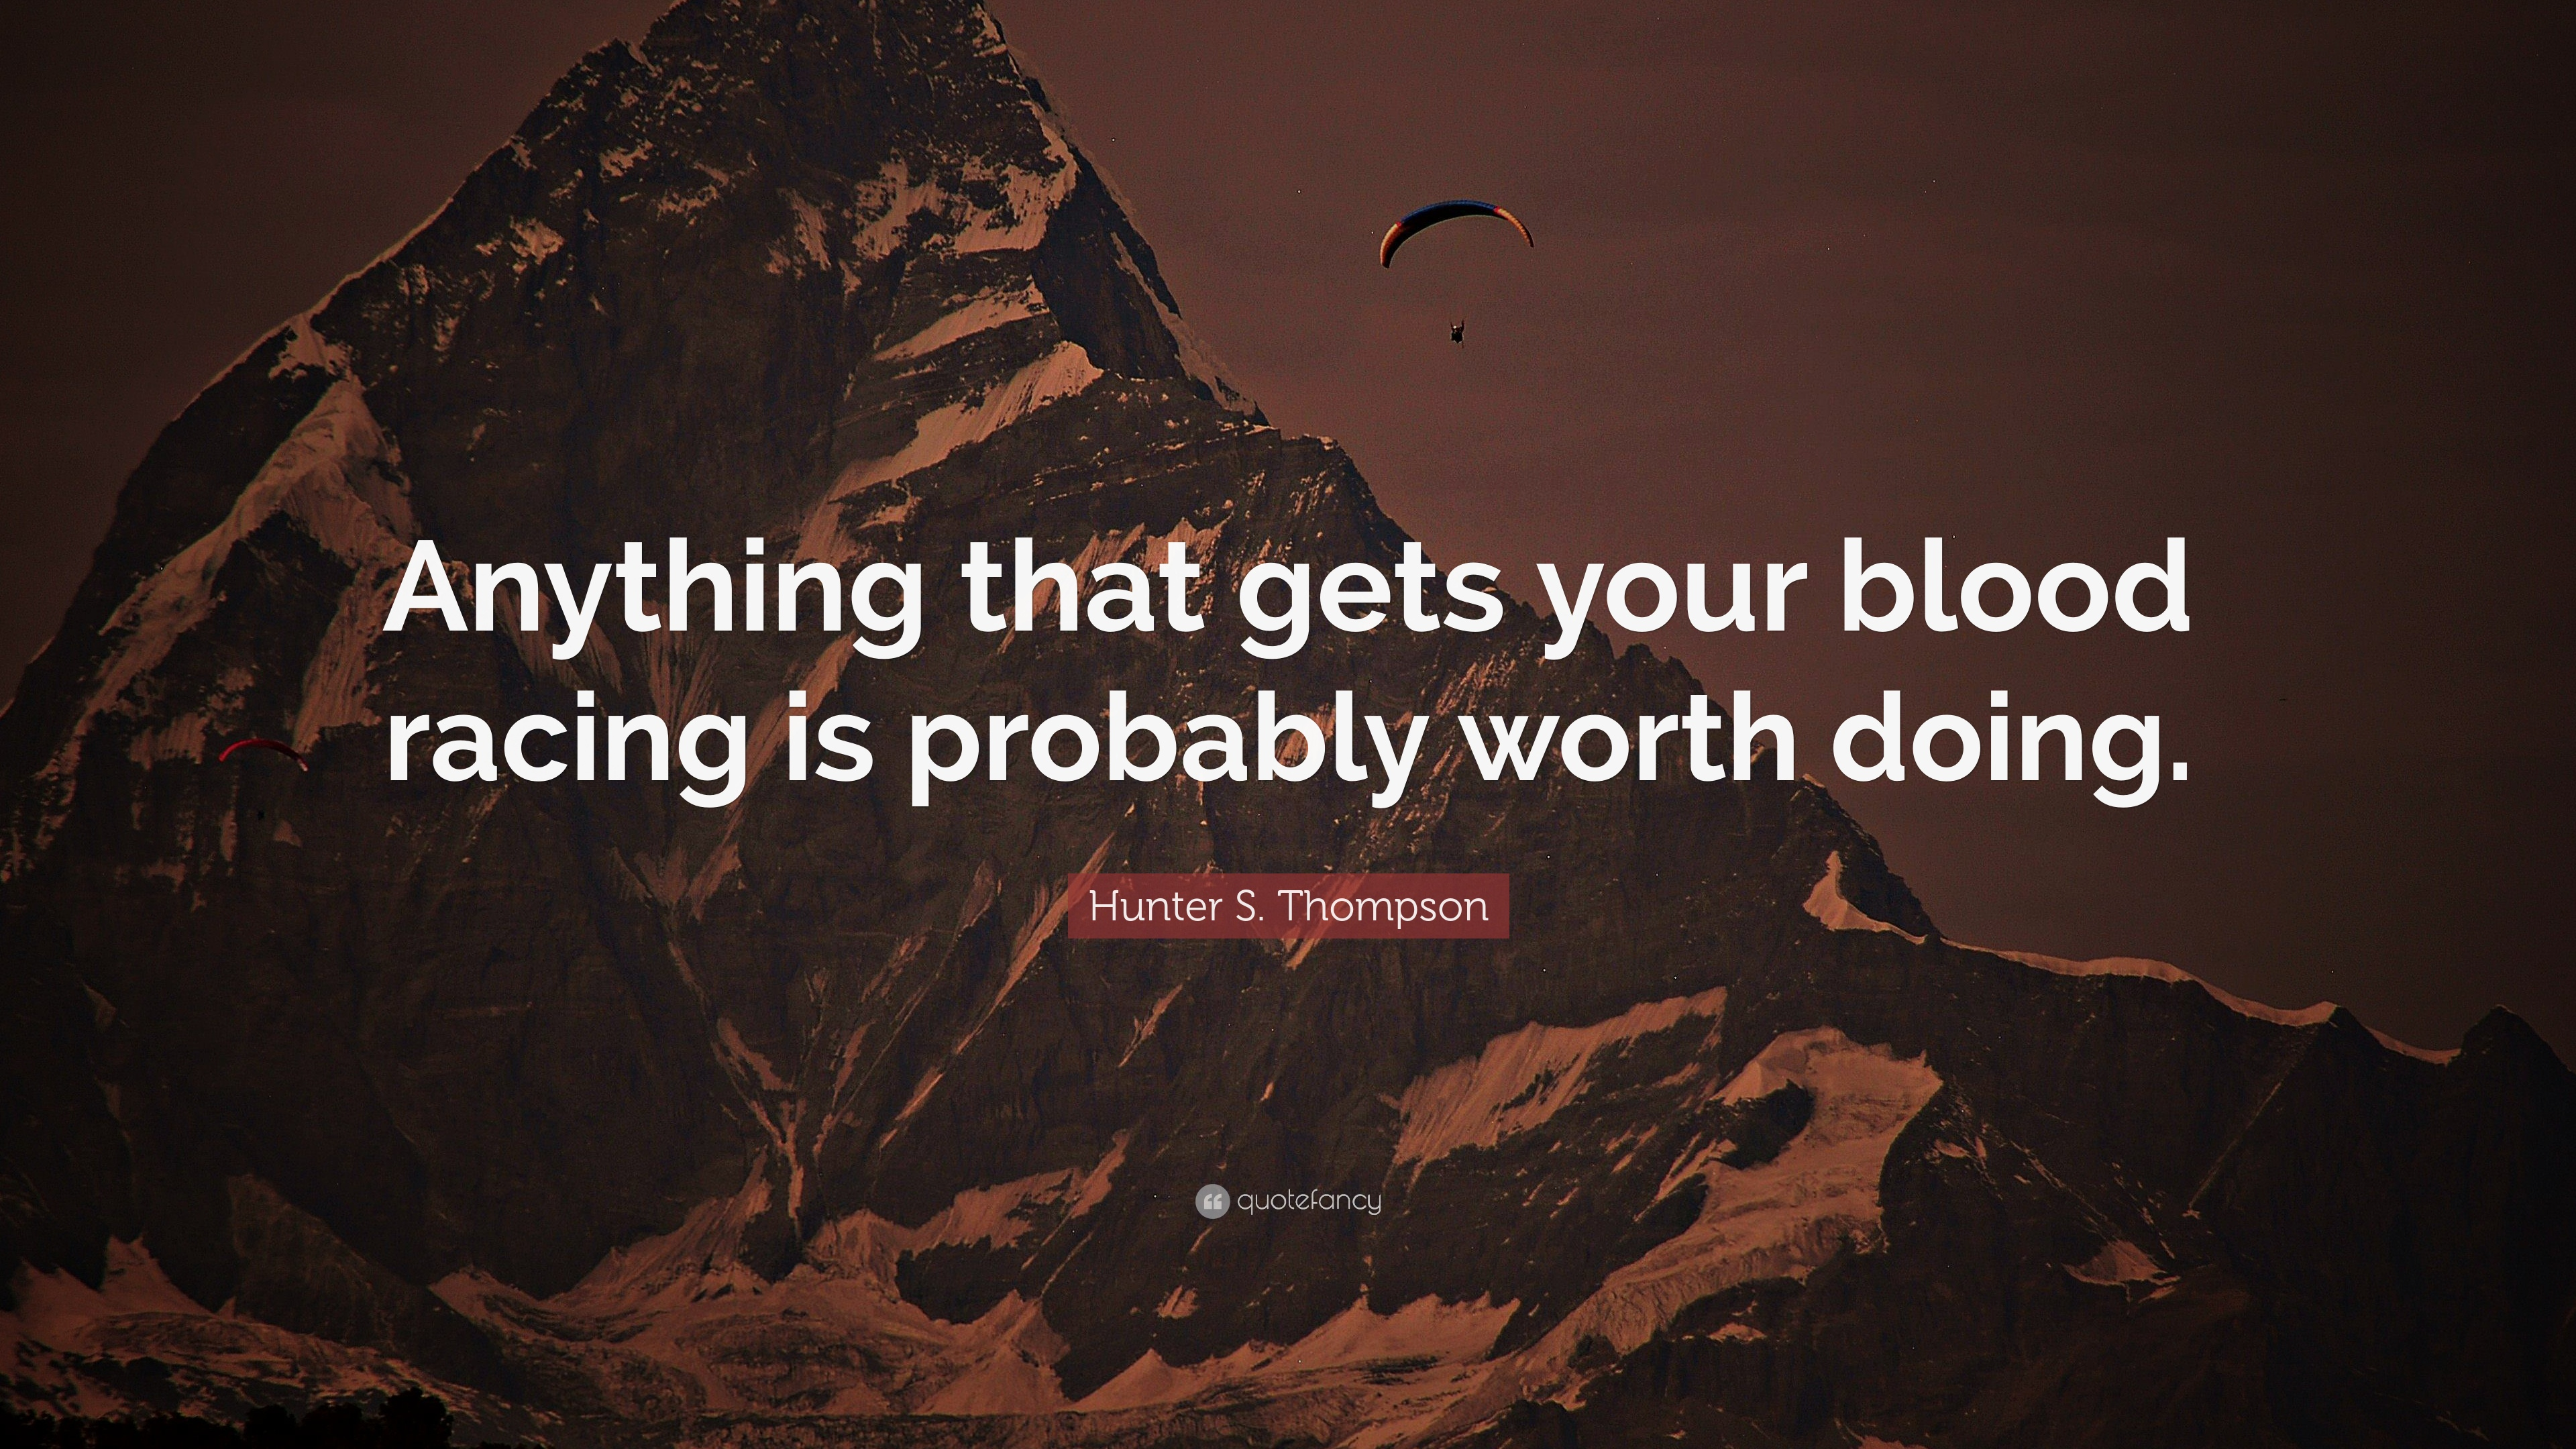 hunter s thompson quote anything that gets your blood racing is